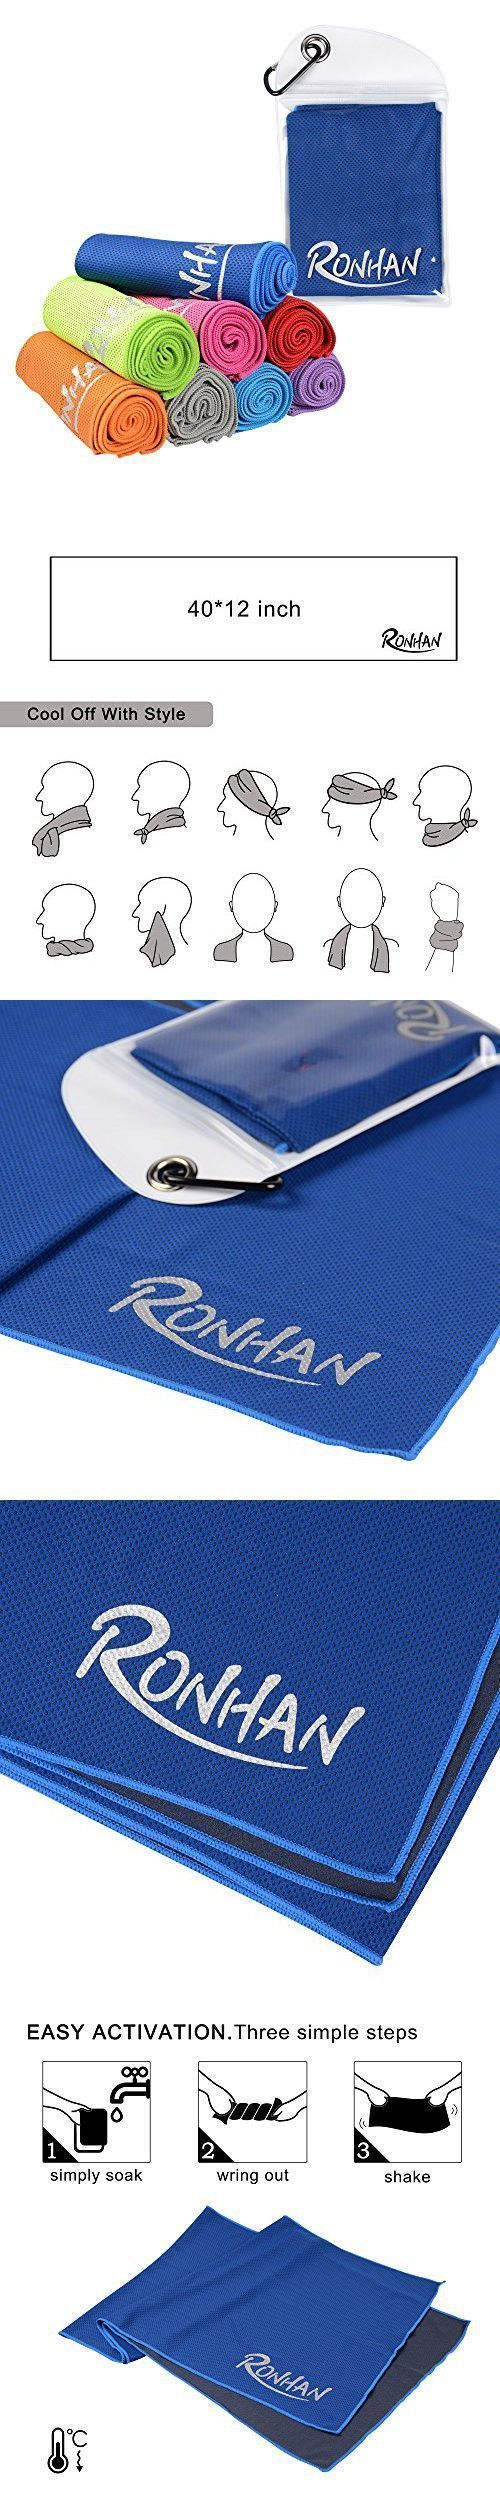 RONHAN Cooling Towel, Ice Towel, Soft Breathable Chilly Towel for Sports, Workout, Fitness, Gym, Run...